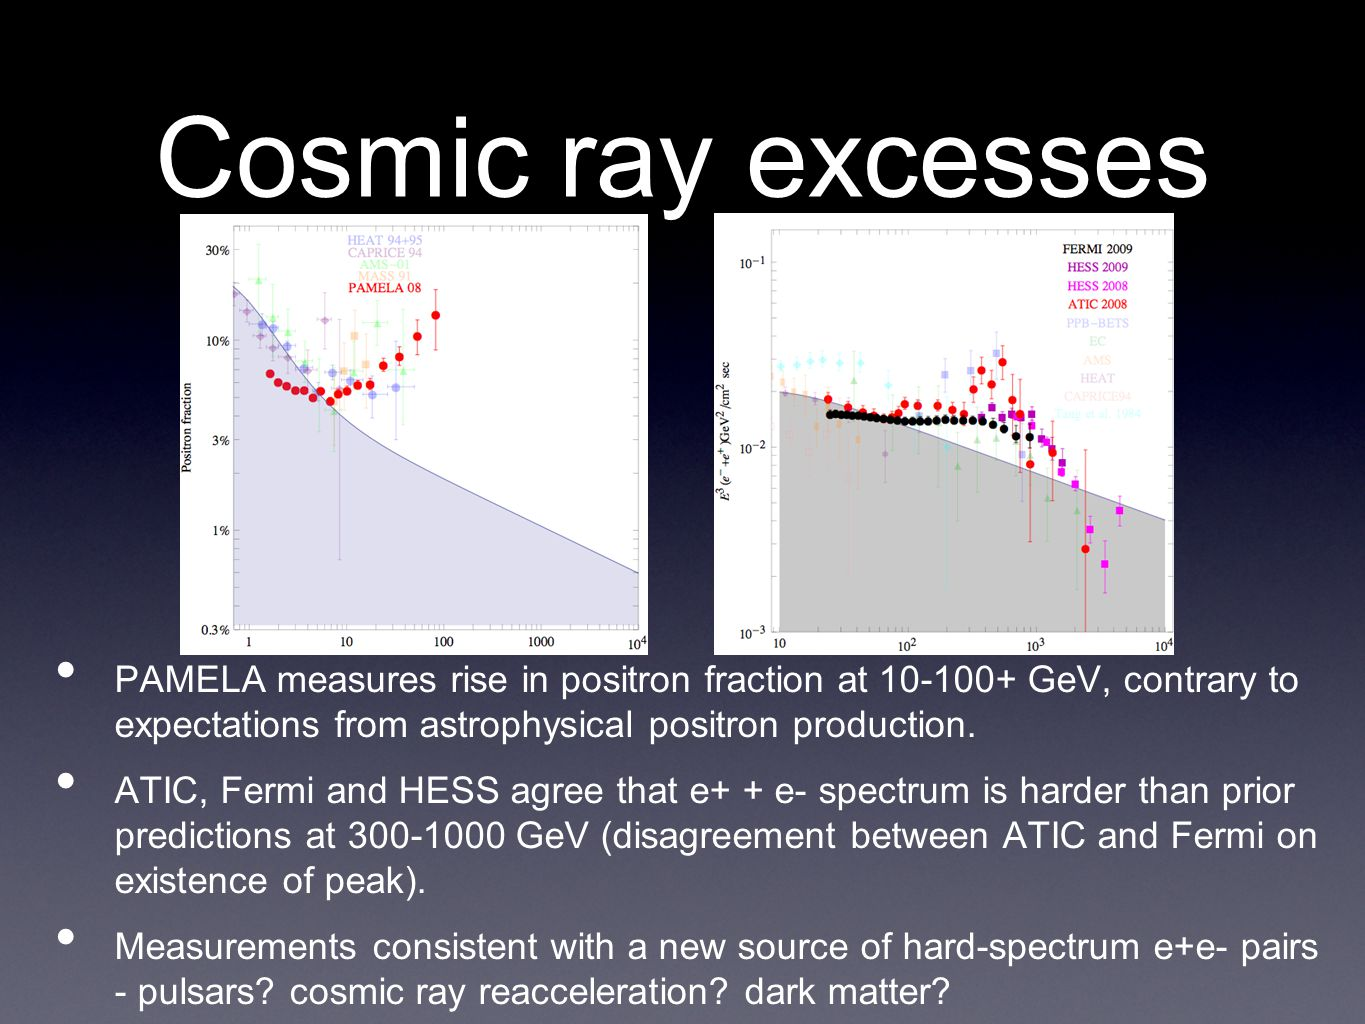 Cosmic ray excesses • PAMELA measures rise in positron fraction at 10-100+ GeV, contrary to expectations from astrophysical positron production.